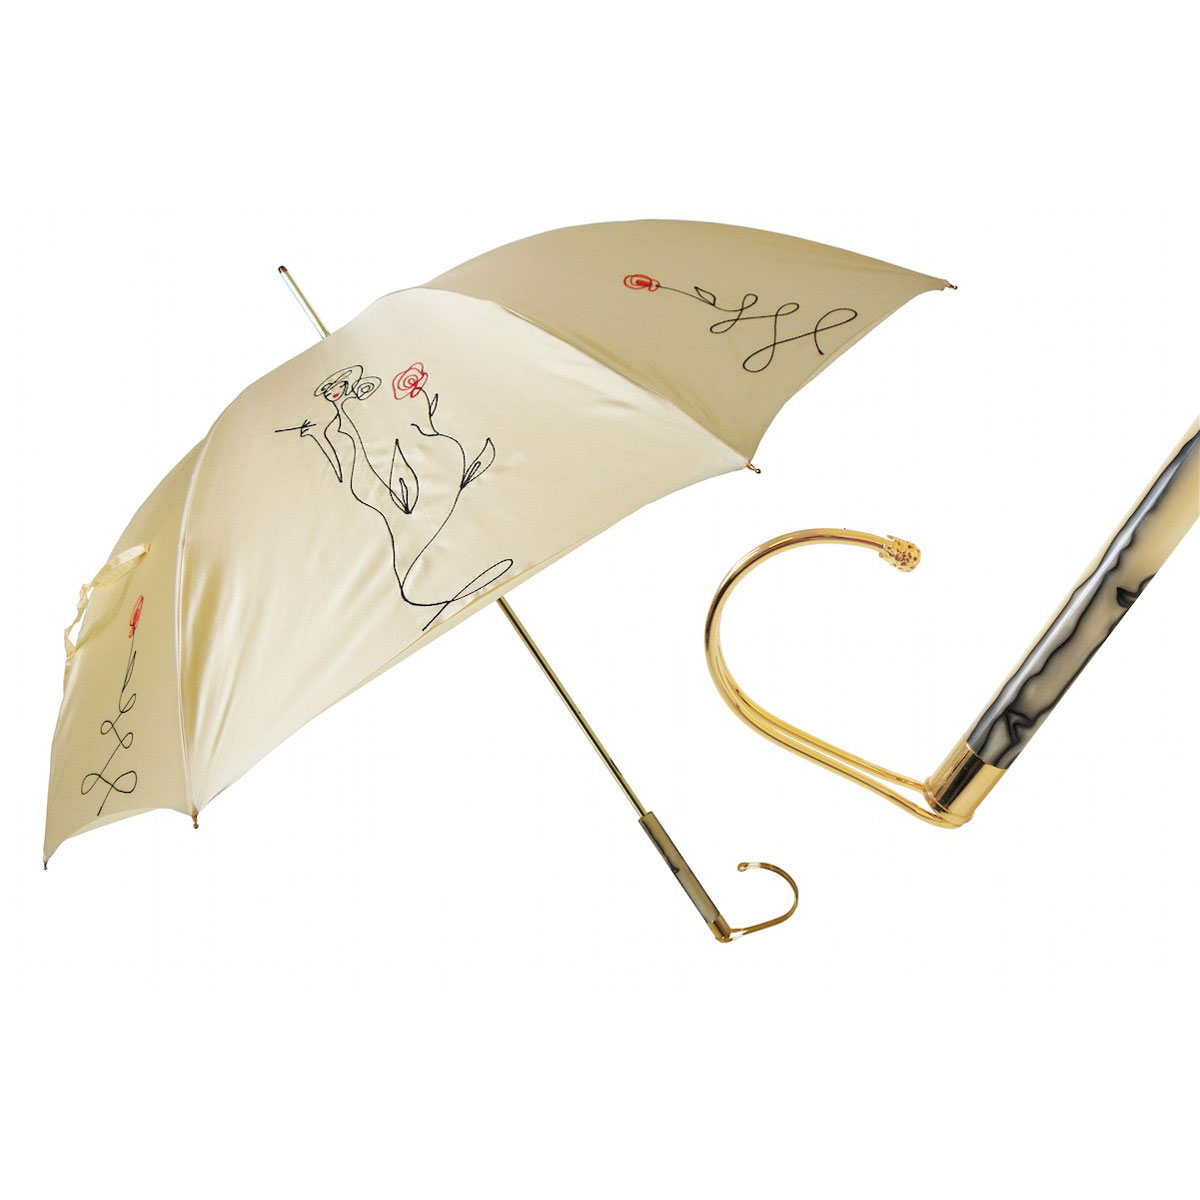 Pasotti Ombrelli Ivory Sketch Woman Luxury Women's Umbrella